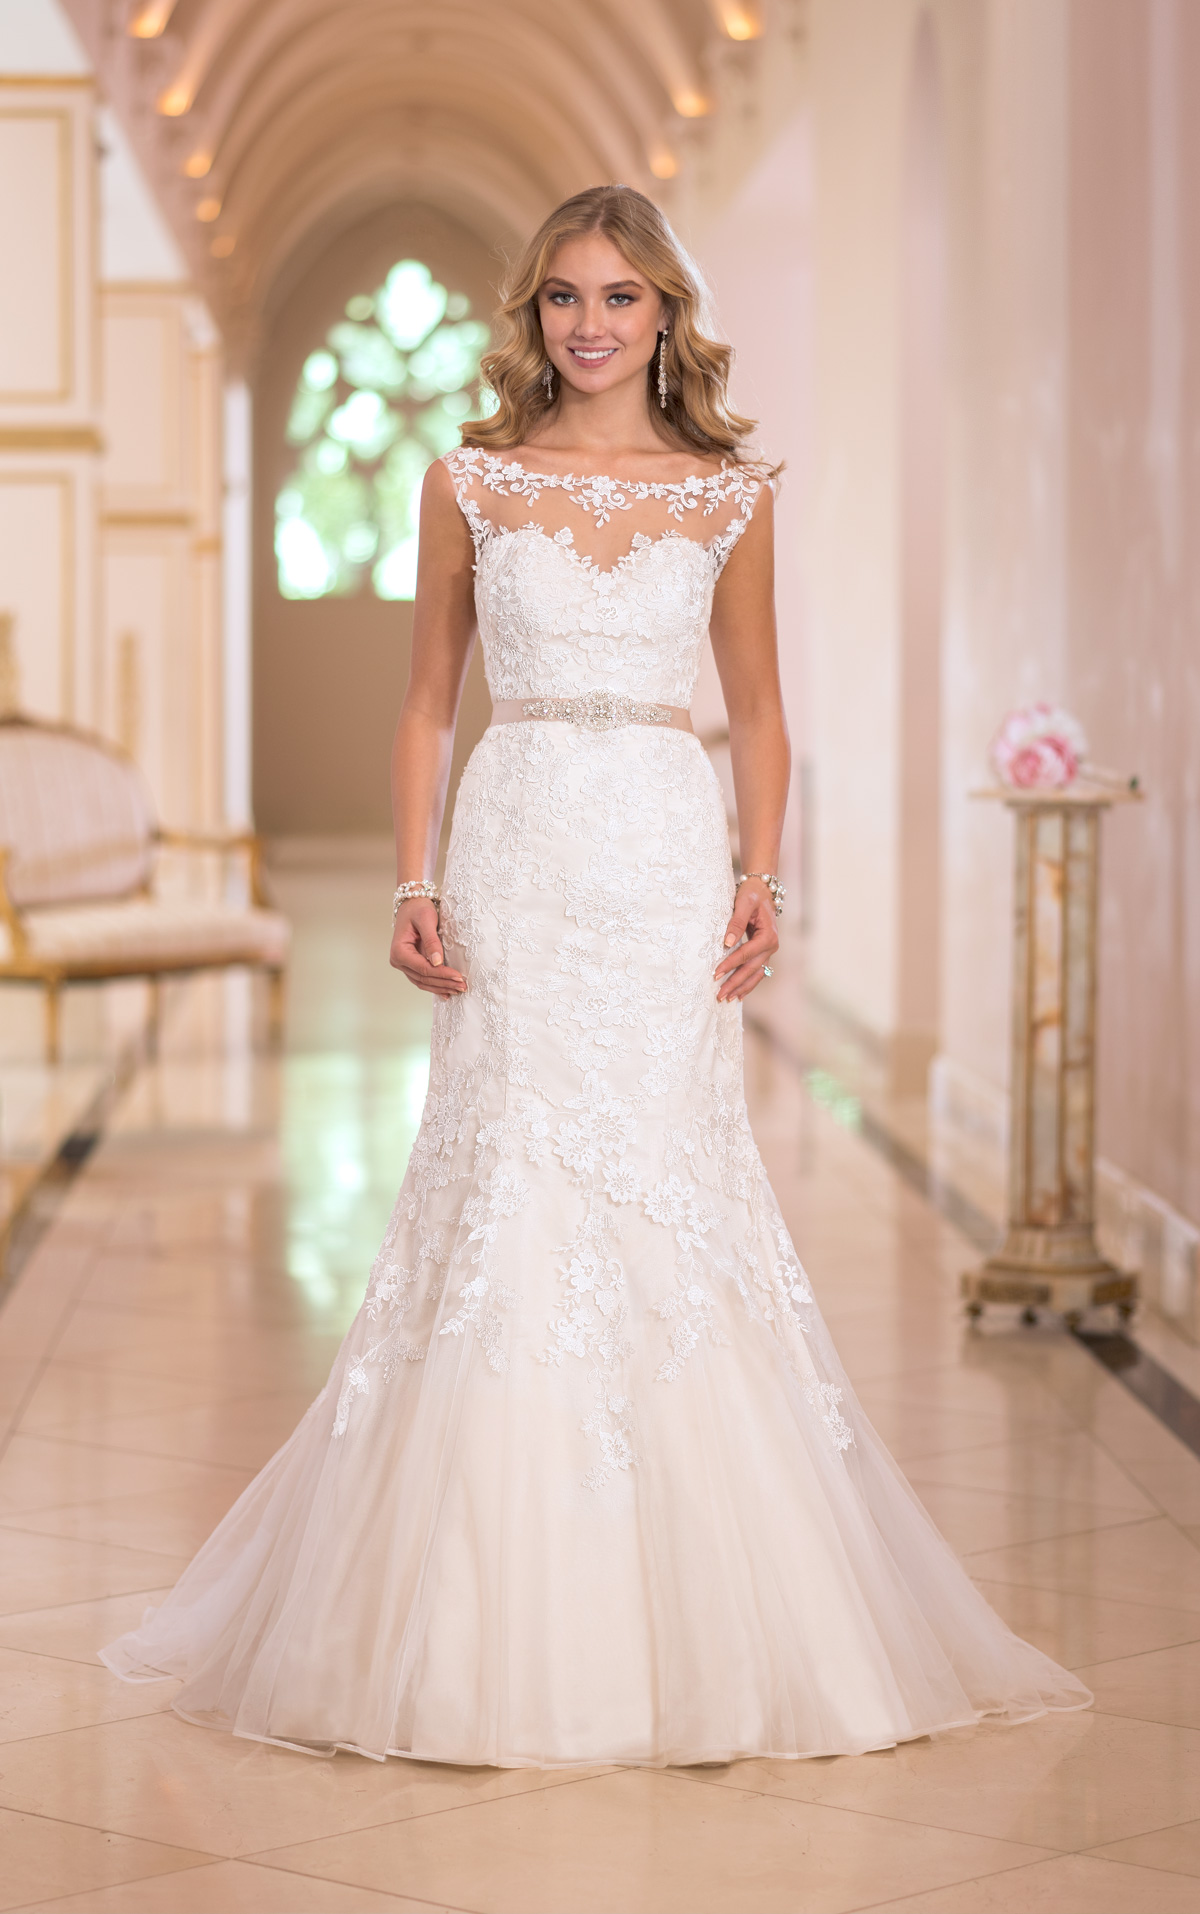 Wedding Stella York Wedding Dresses glamorous stella york wedding dresses 2014 collection modwedding 13 01152014